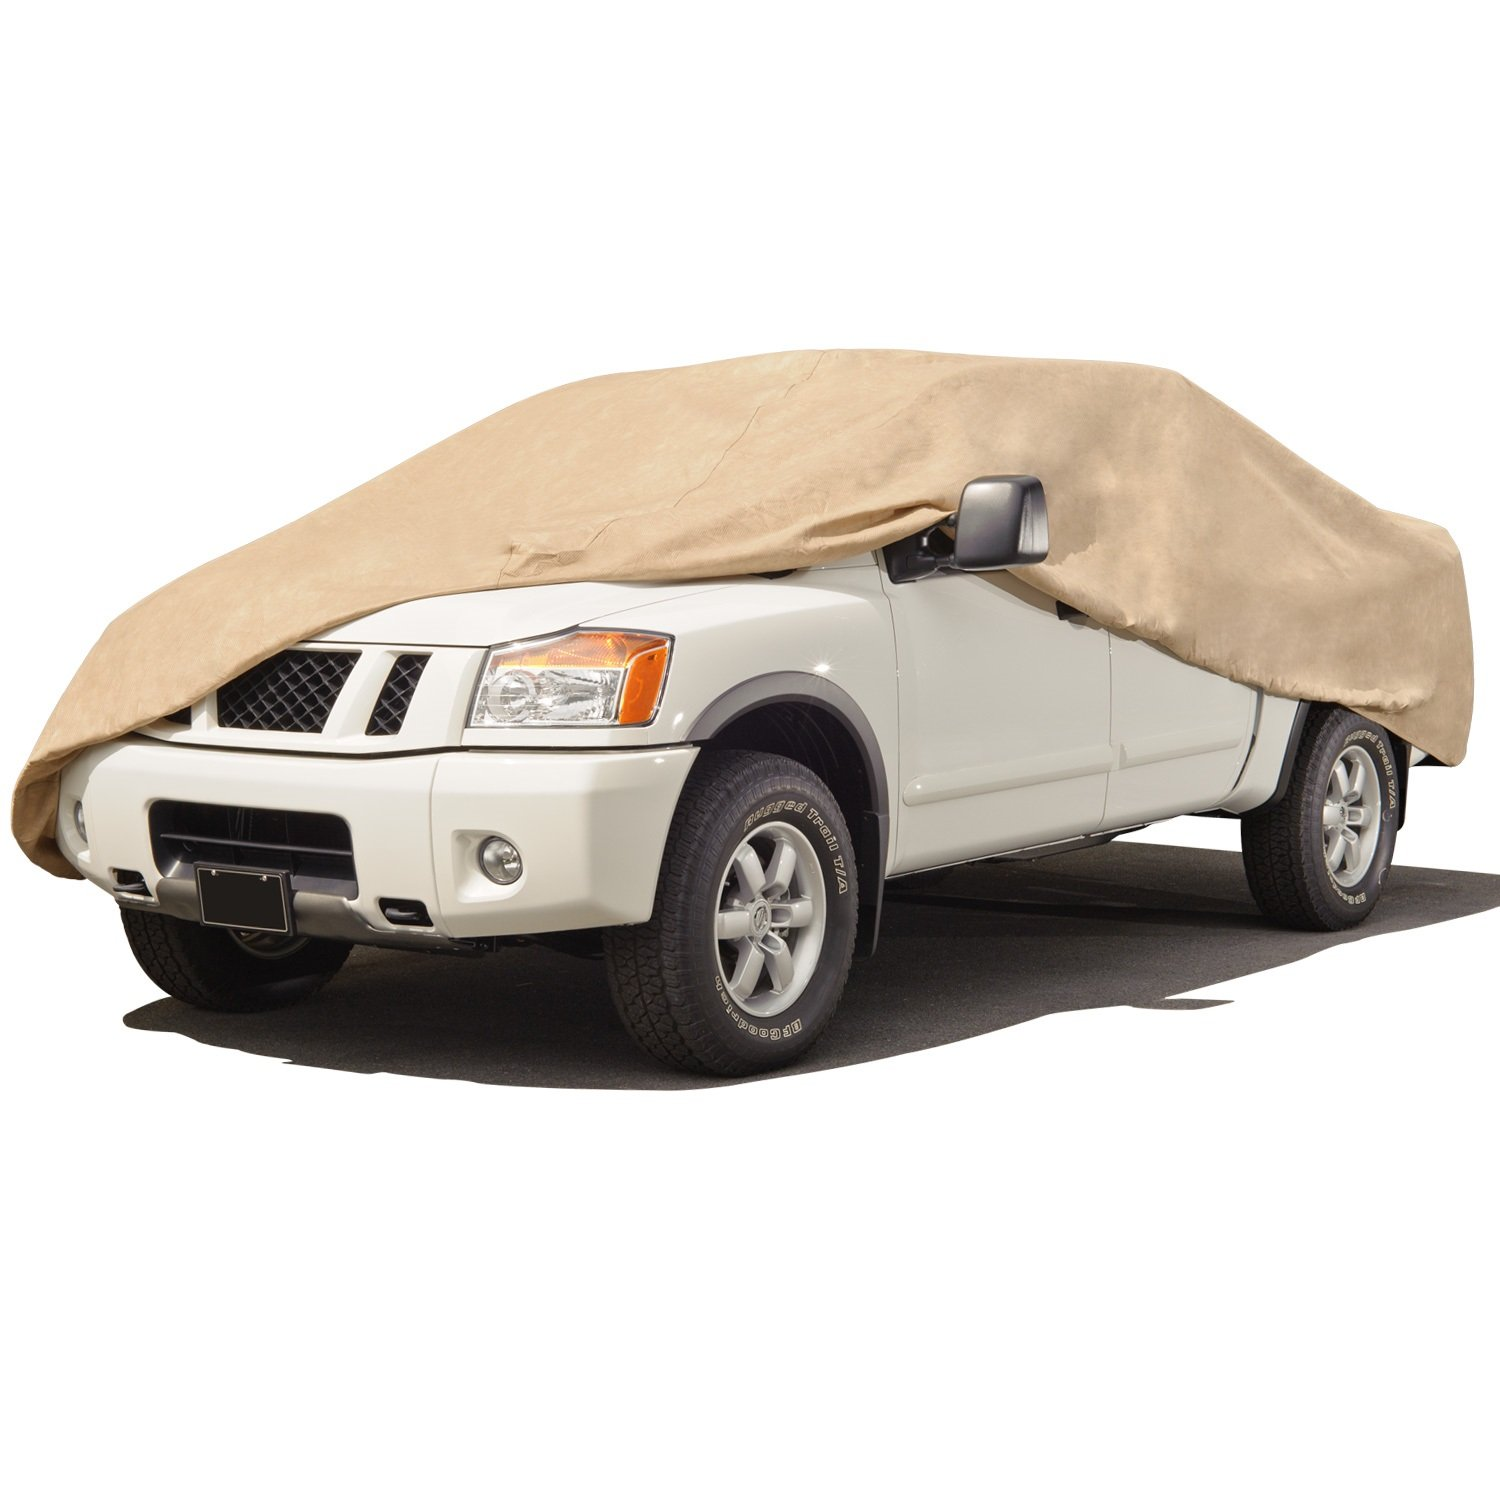 Truck Cover 90 inches Budge TA-3 Tan Size 3 Standard Cab Max Bed Length 7 6